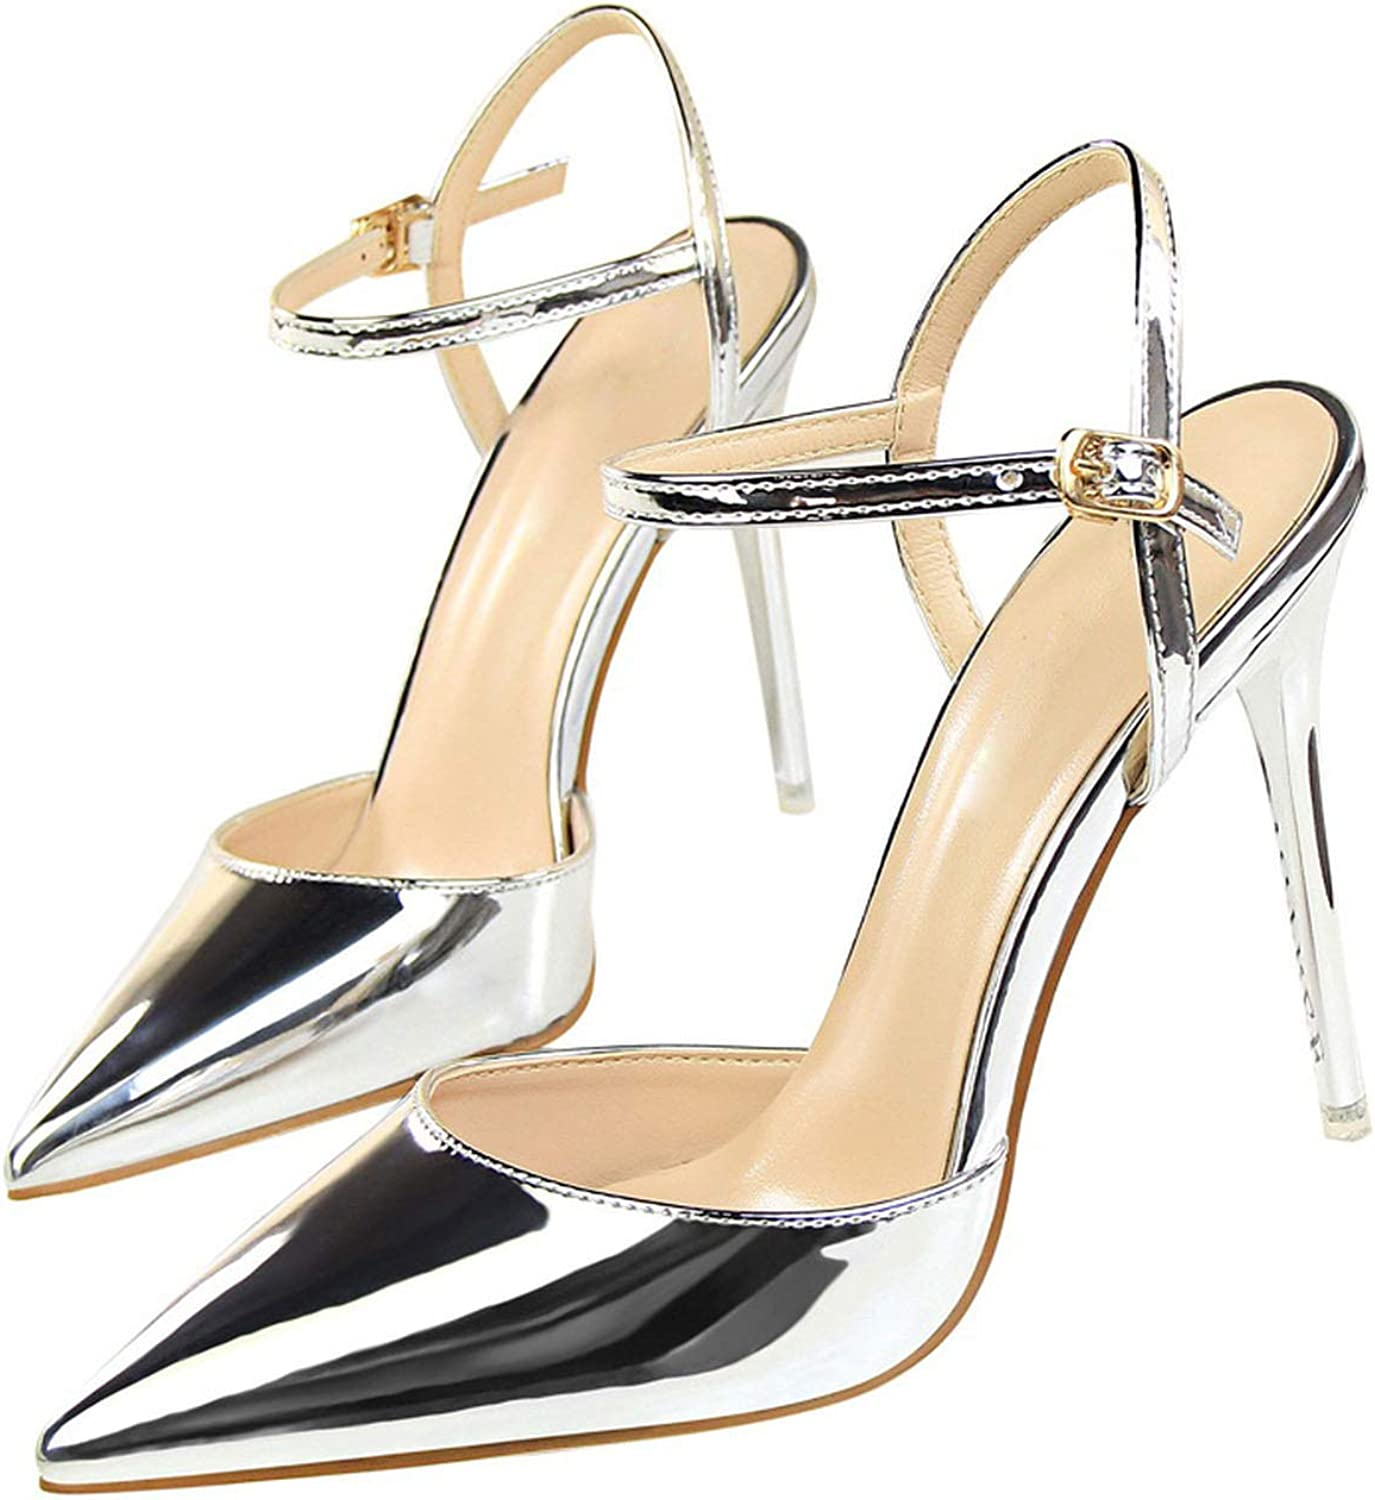 Yiwu Fuchen1 2019 Women Concise Fashion Ankle Strap shoes Pointed Toe Thin Buckle Slingbacks Pumps High Heels